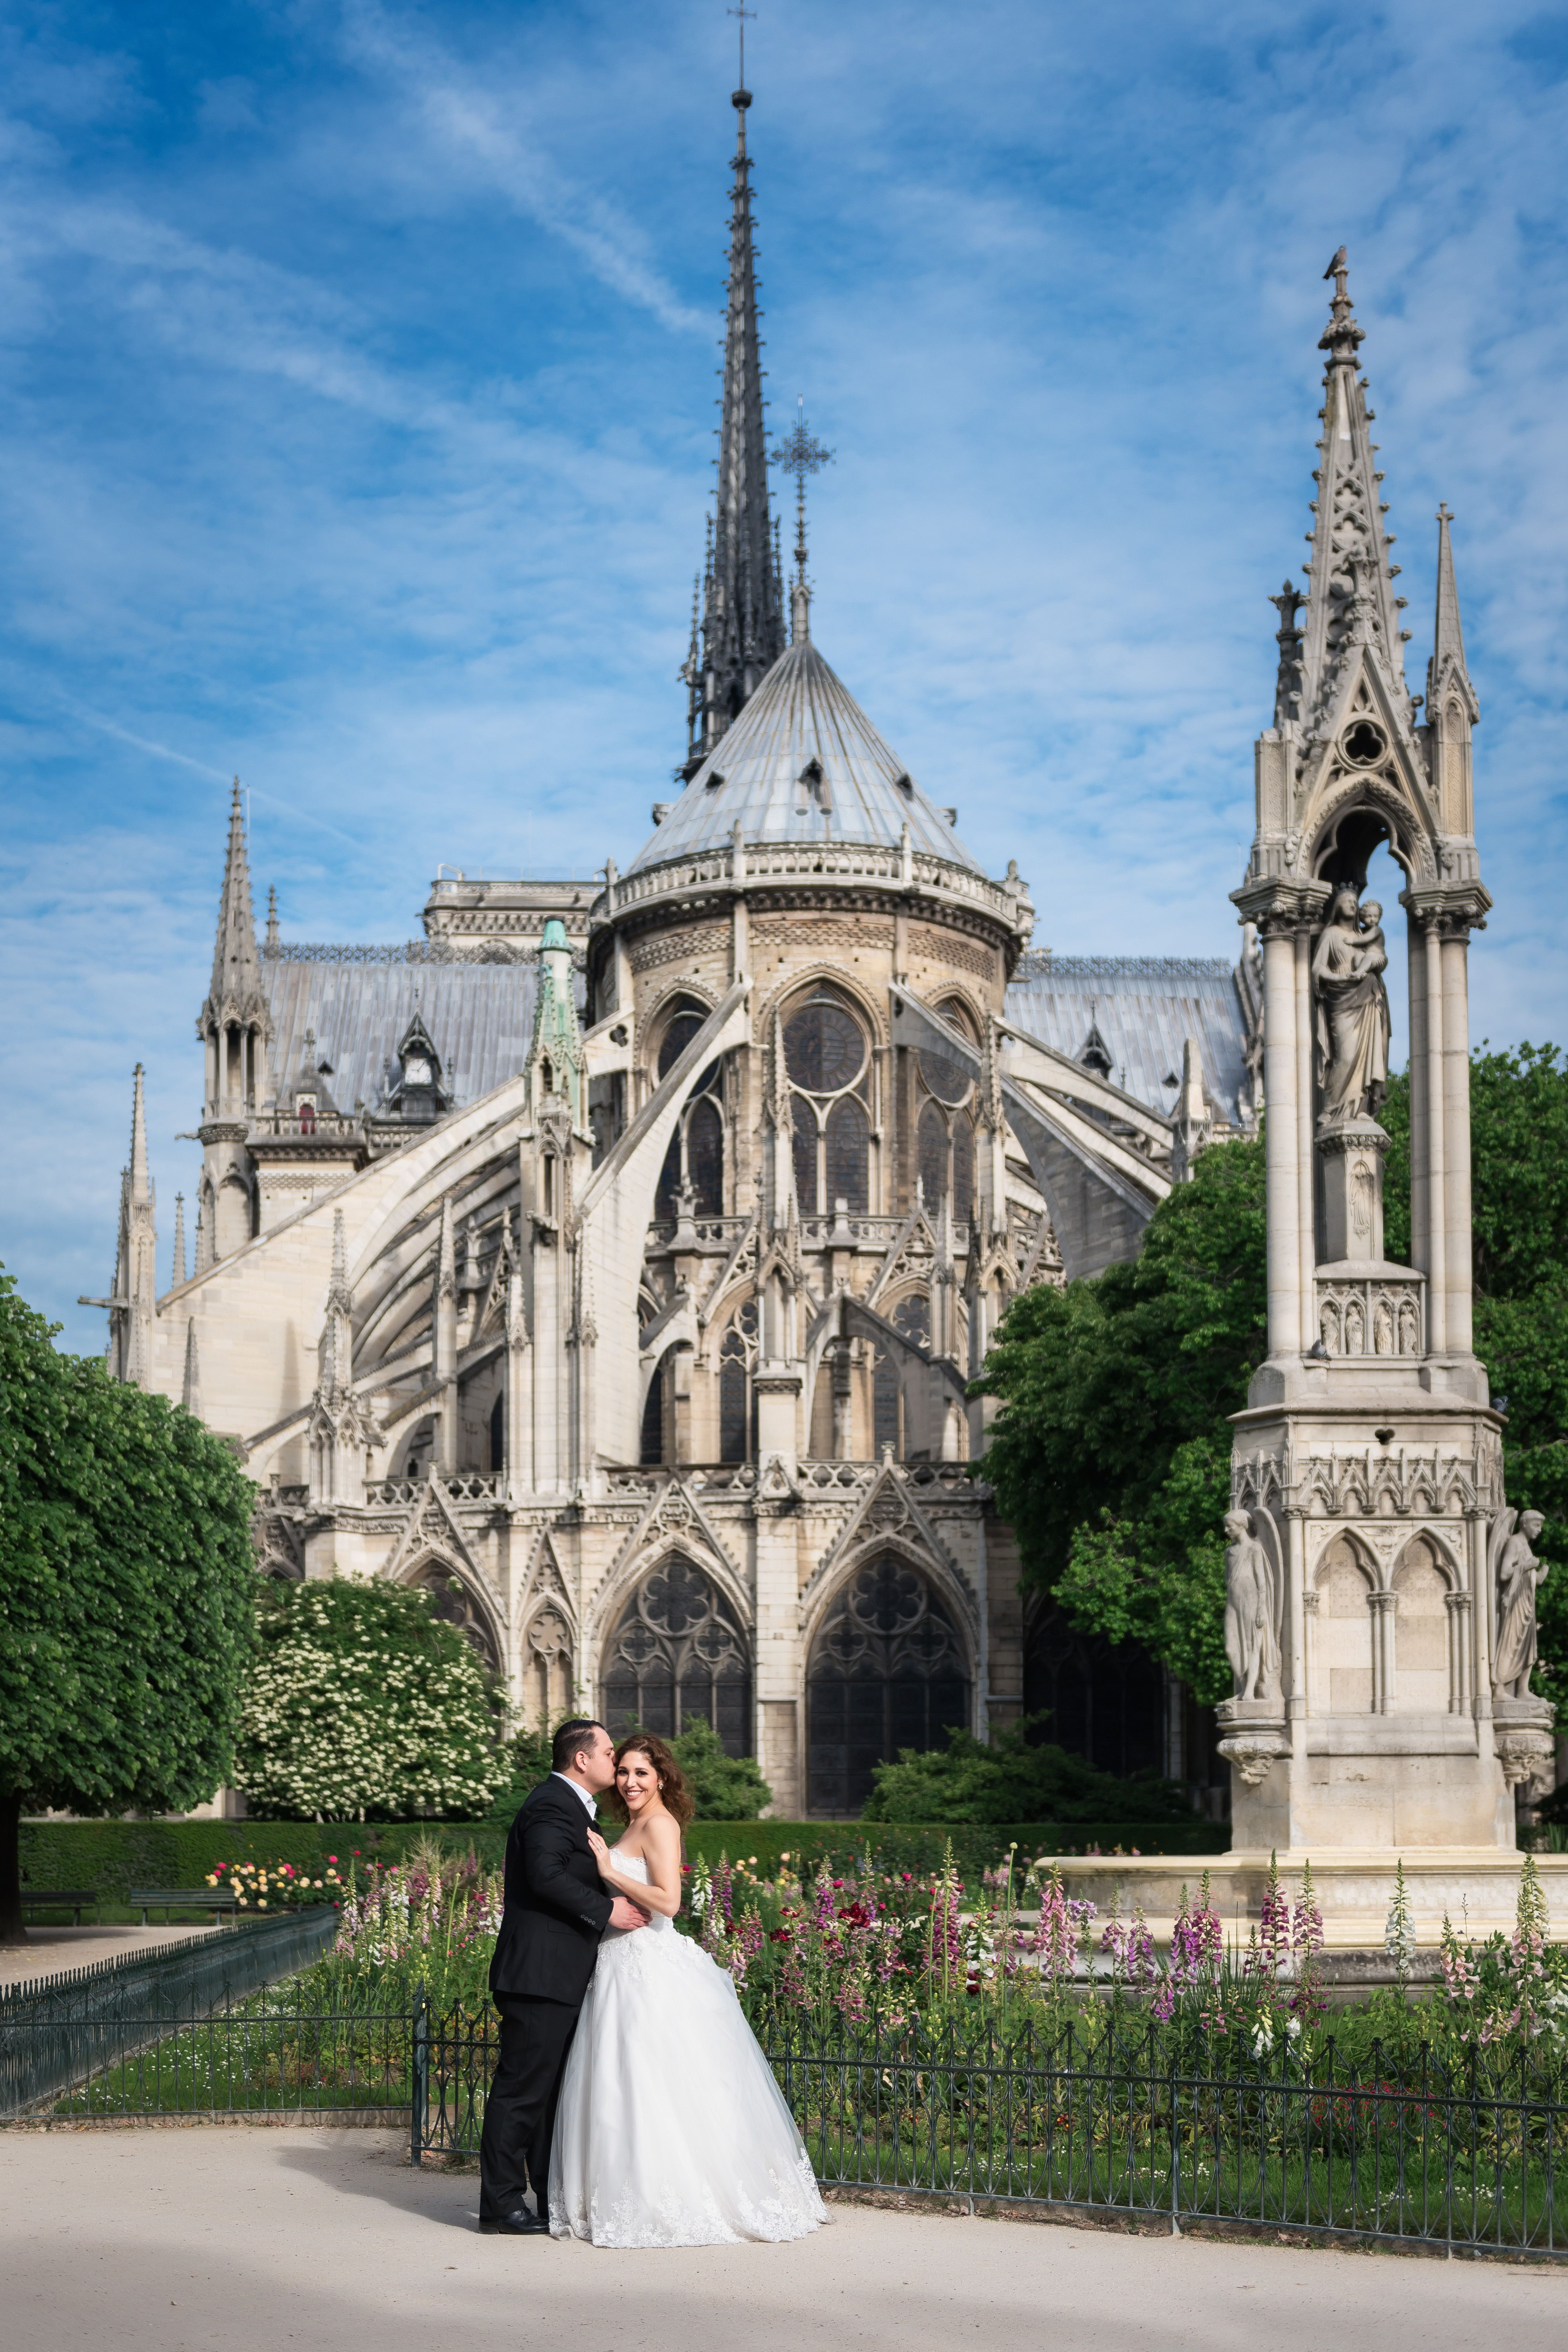 The Notre Dame cathedral is one of the most iconic venues